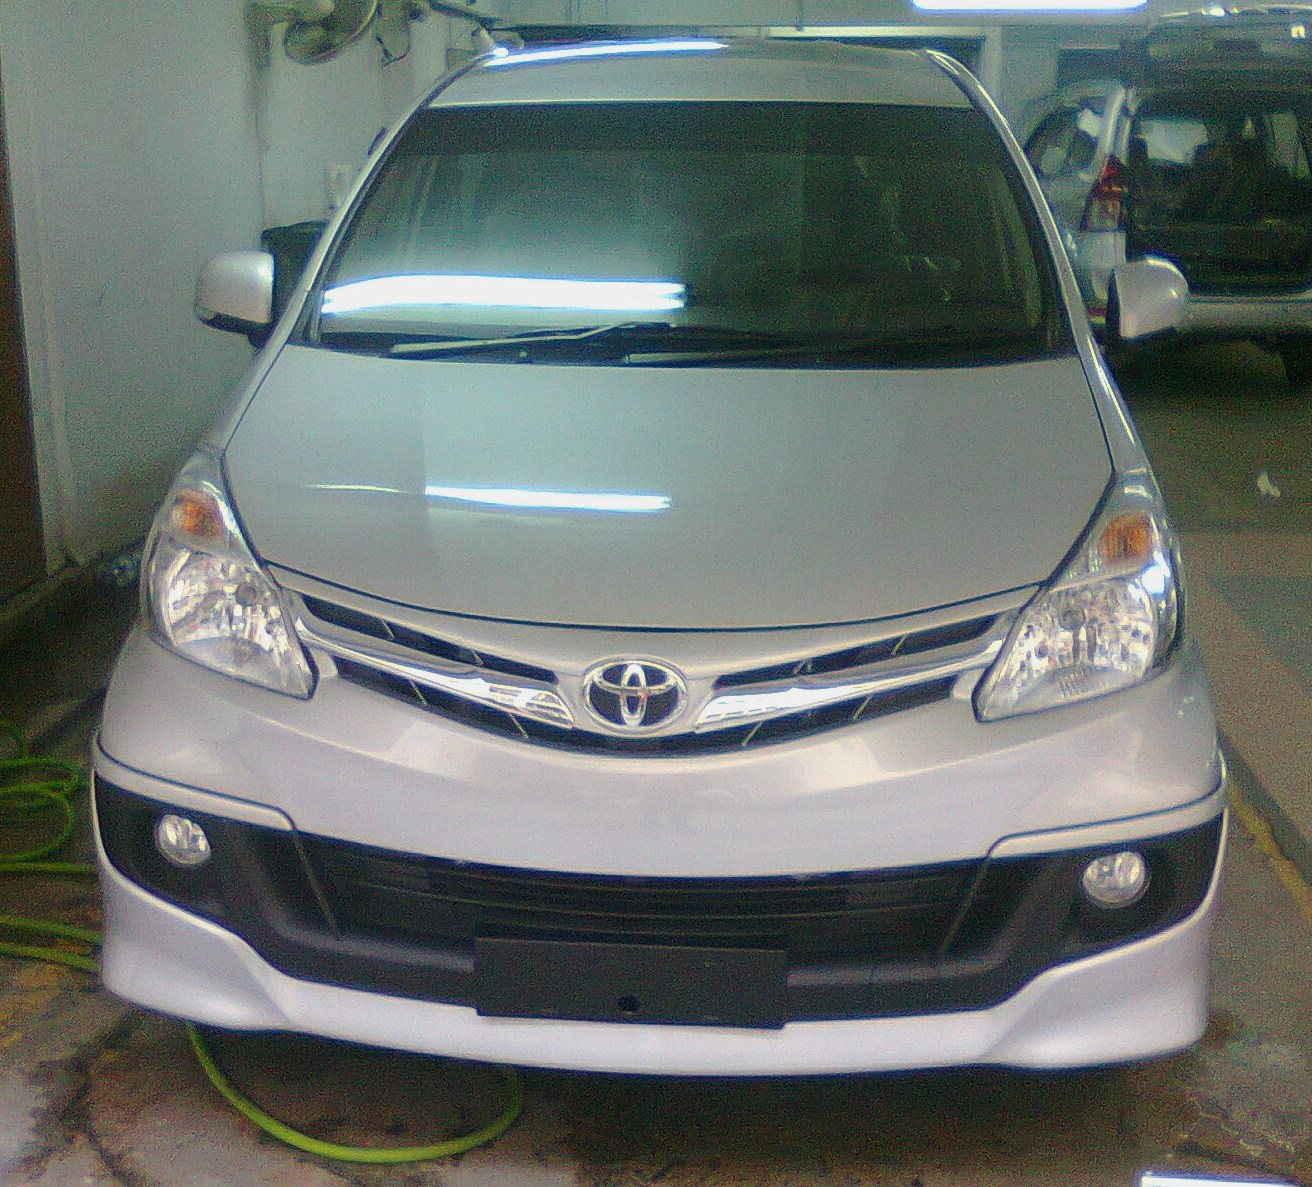 grand new avanza silver metallic e mt 2013 brand toyota 1 3 and 5 vvt i toyotanewcars